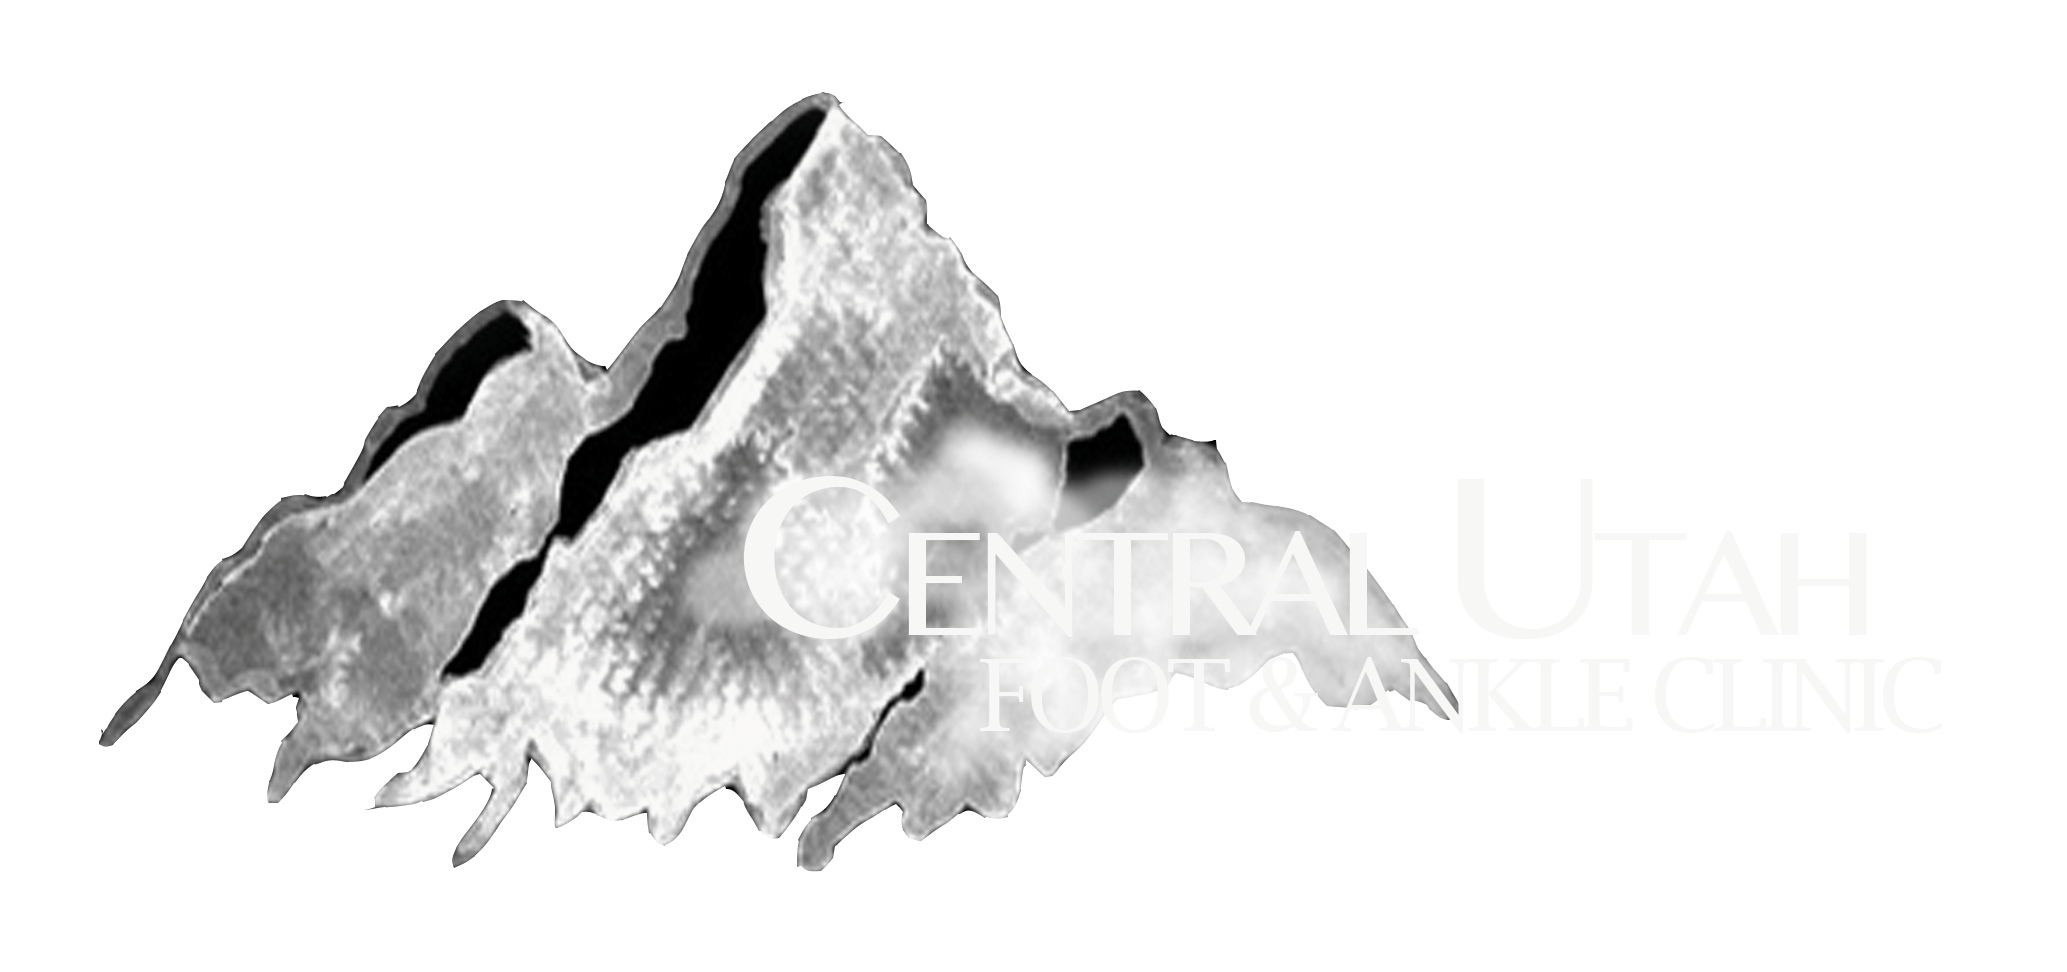 Home Central Utah Foot Clinic